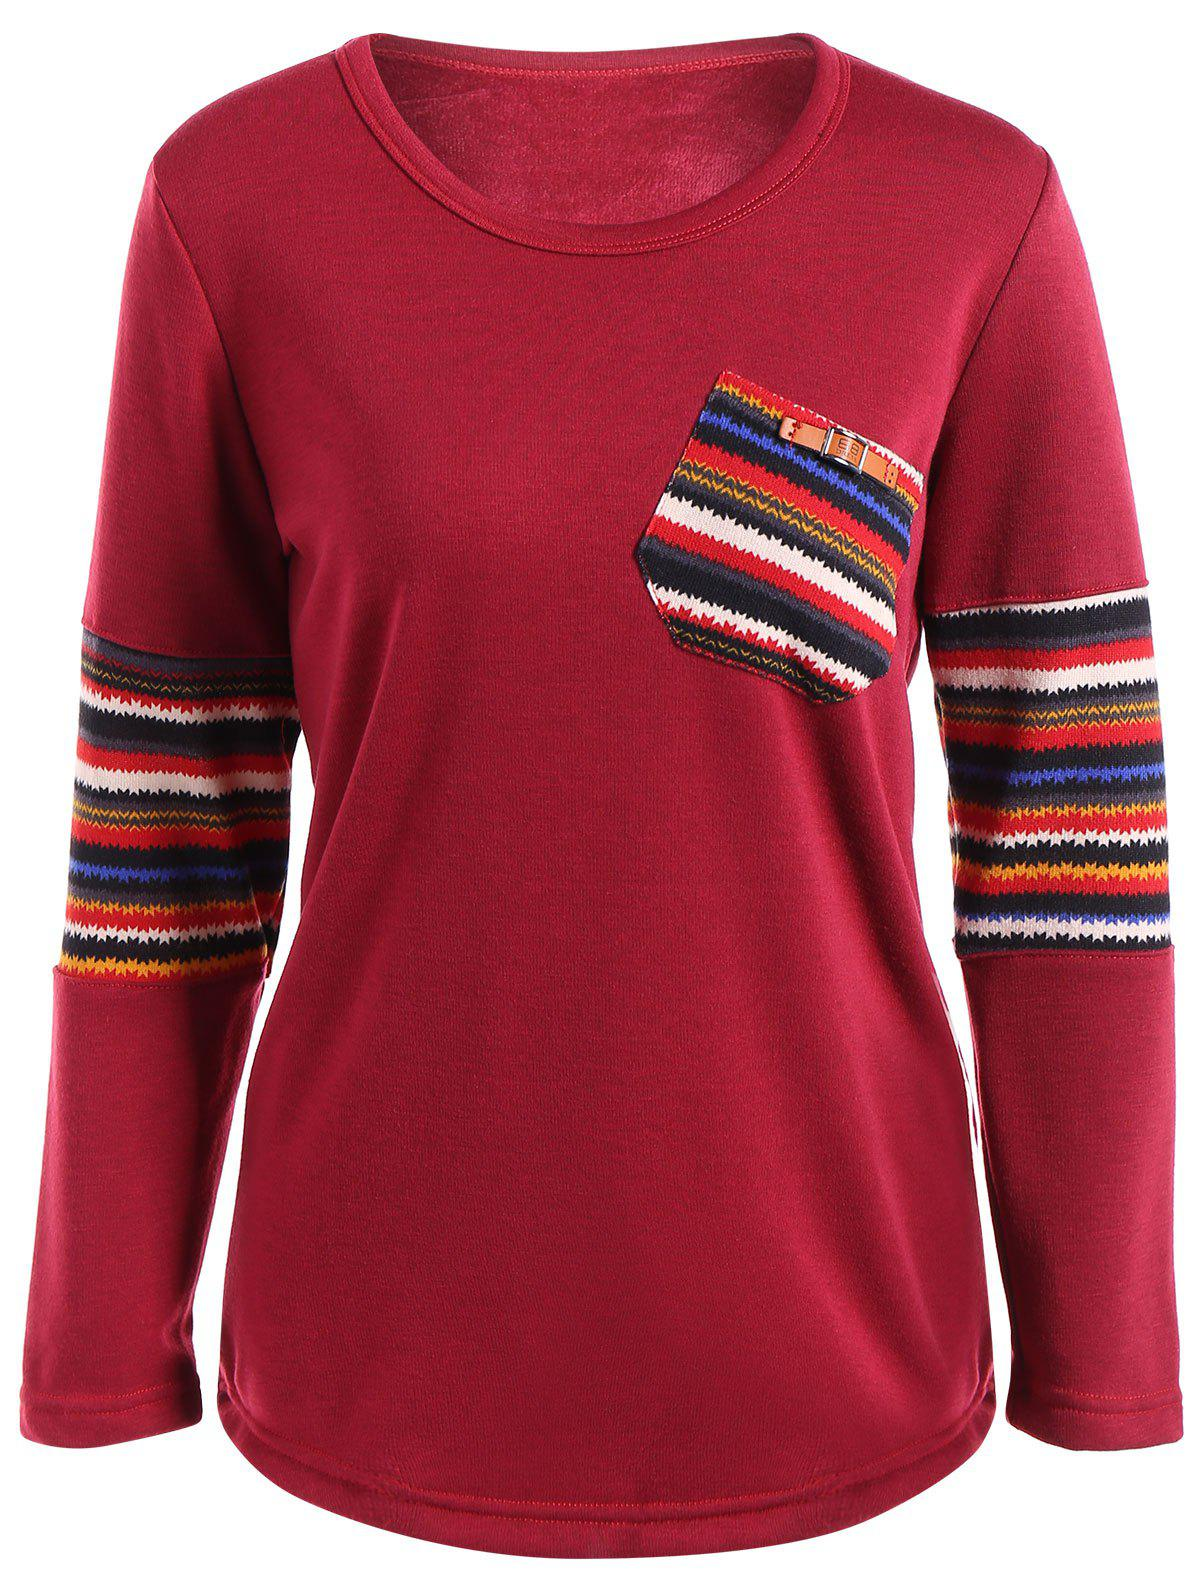 Ethnic Print Spliced Pocket Design T-Shirt - RED 3XL